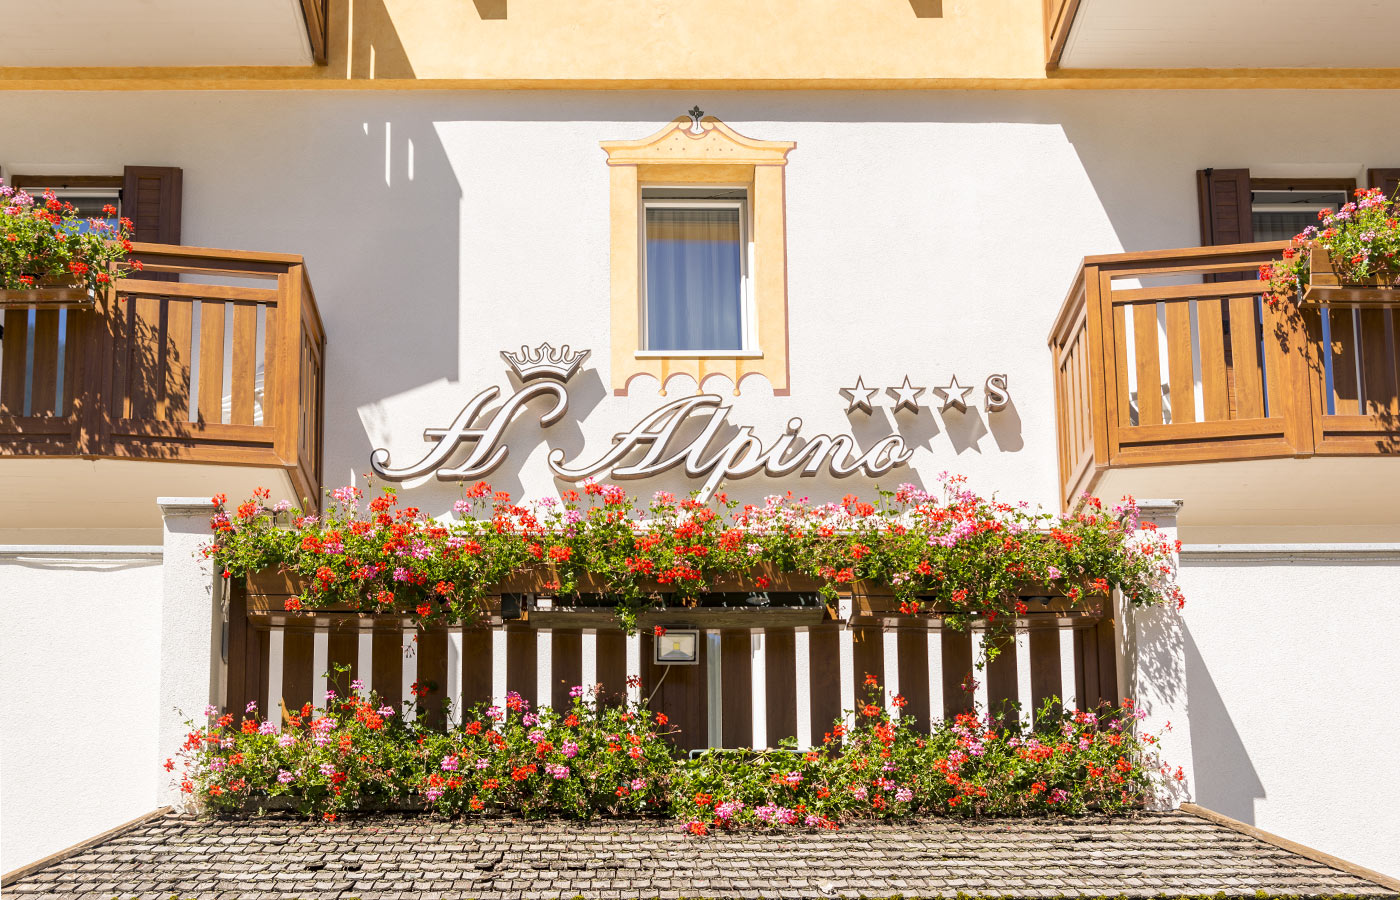 A balcony with flowers under the writing Hotel Alpino